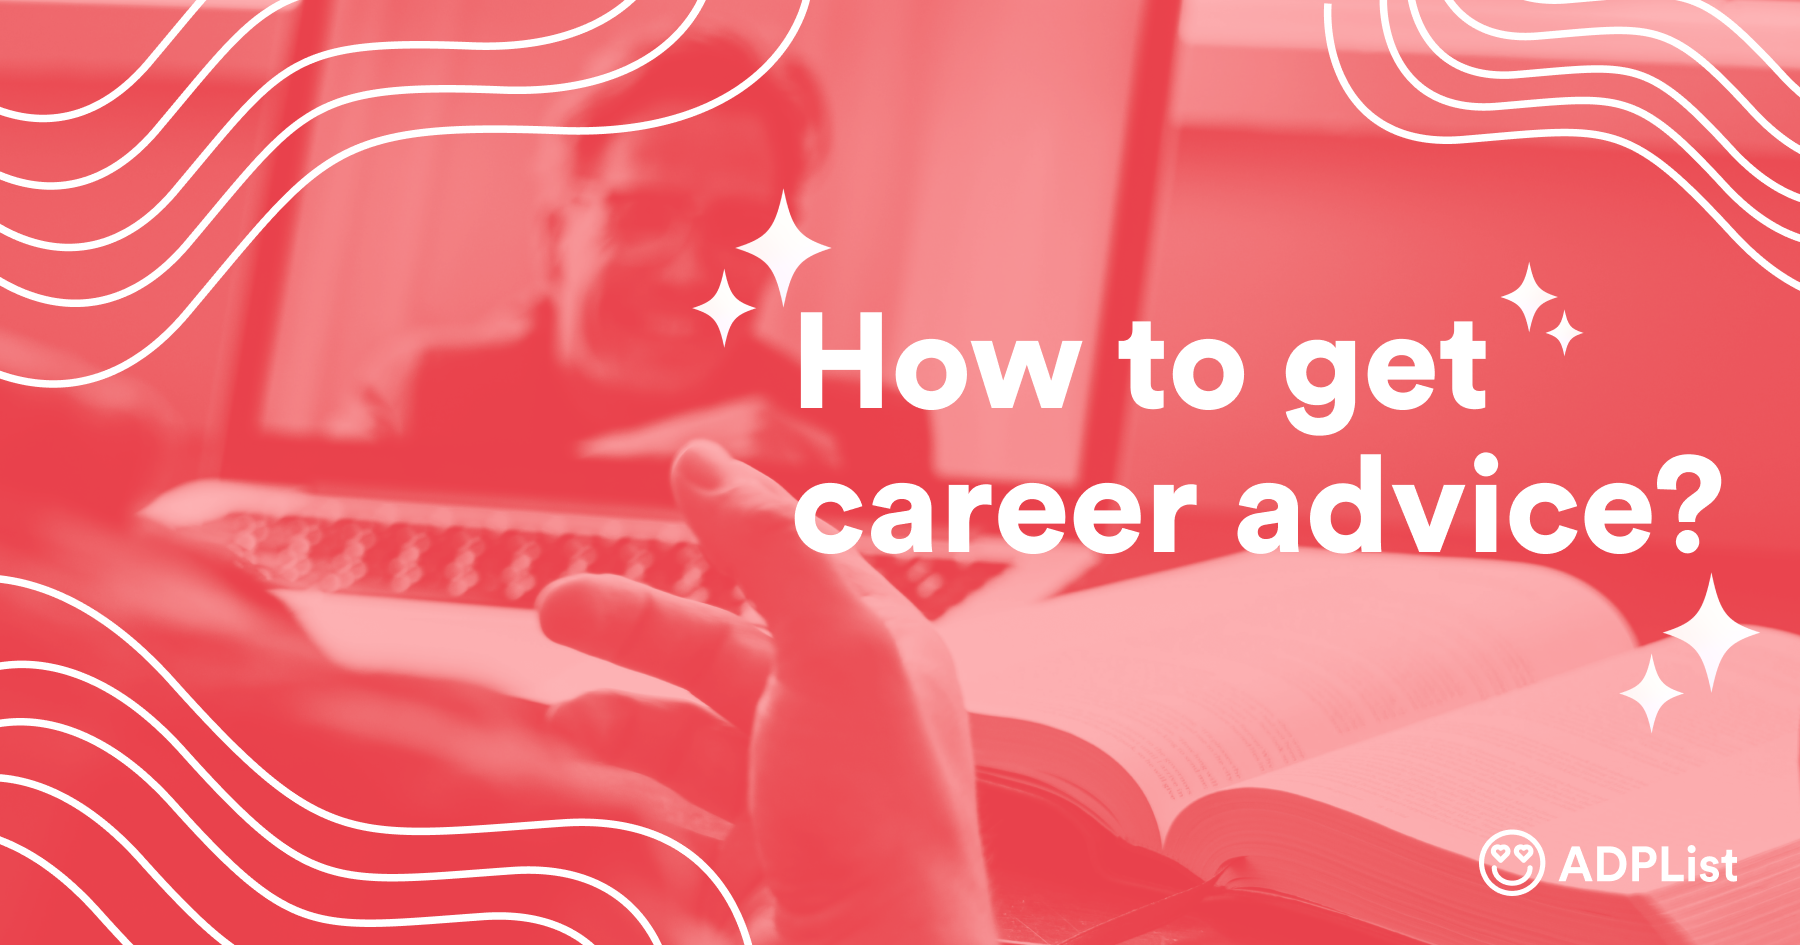 How to get career advice?